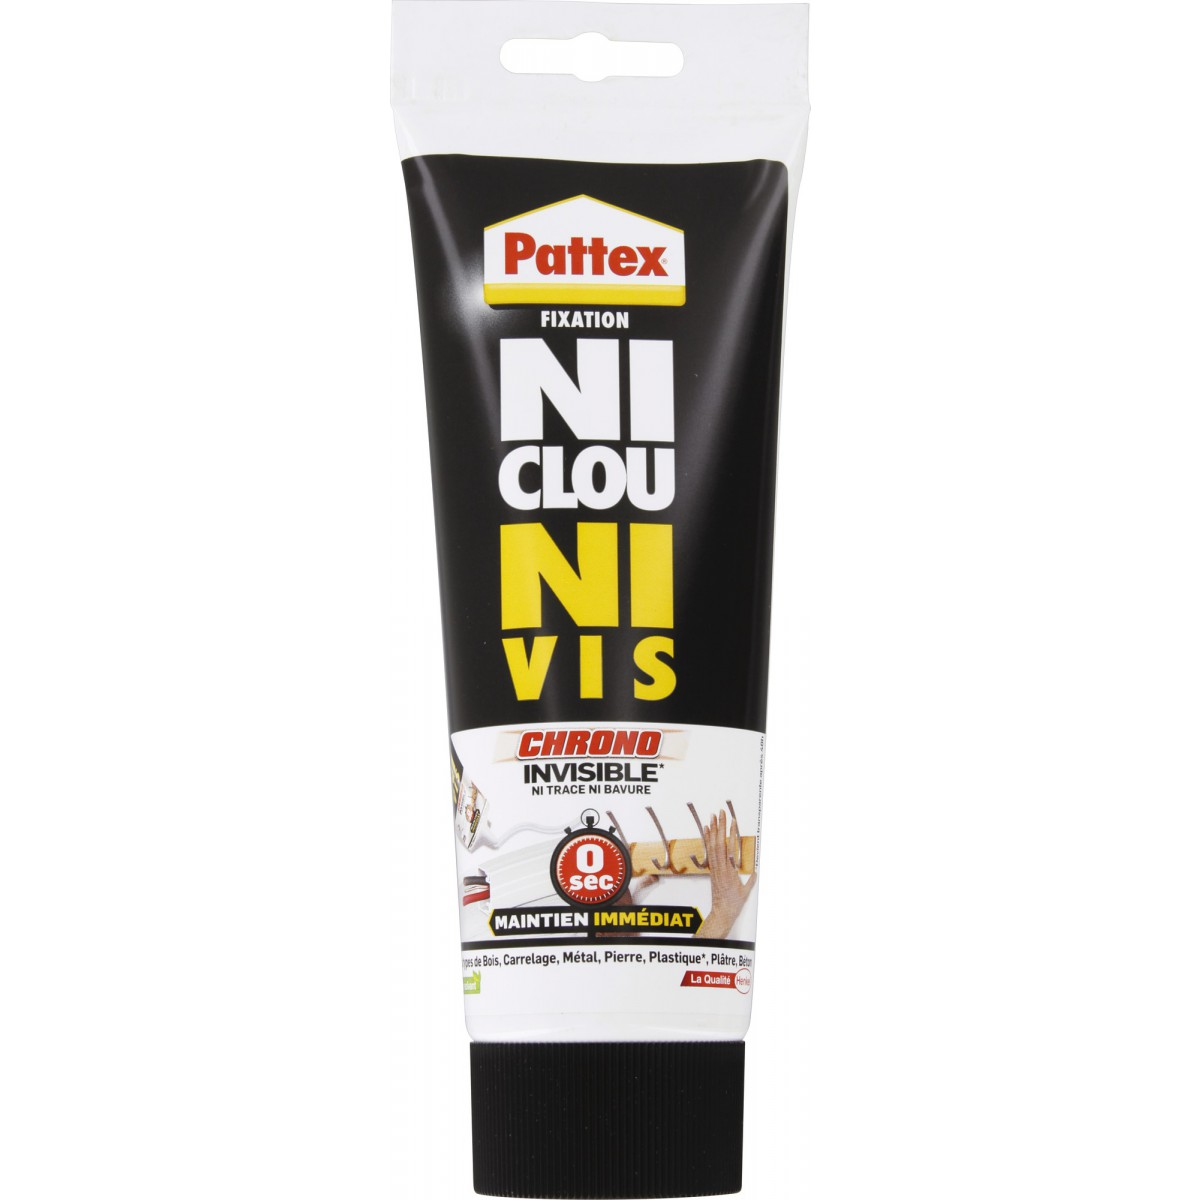 Ni clou ni vis chrono invisible Pattex - Tube 200 g